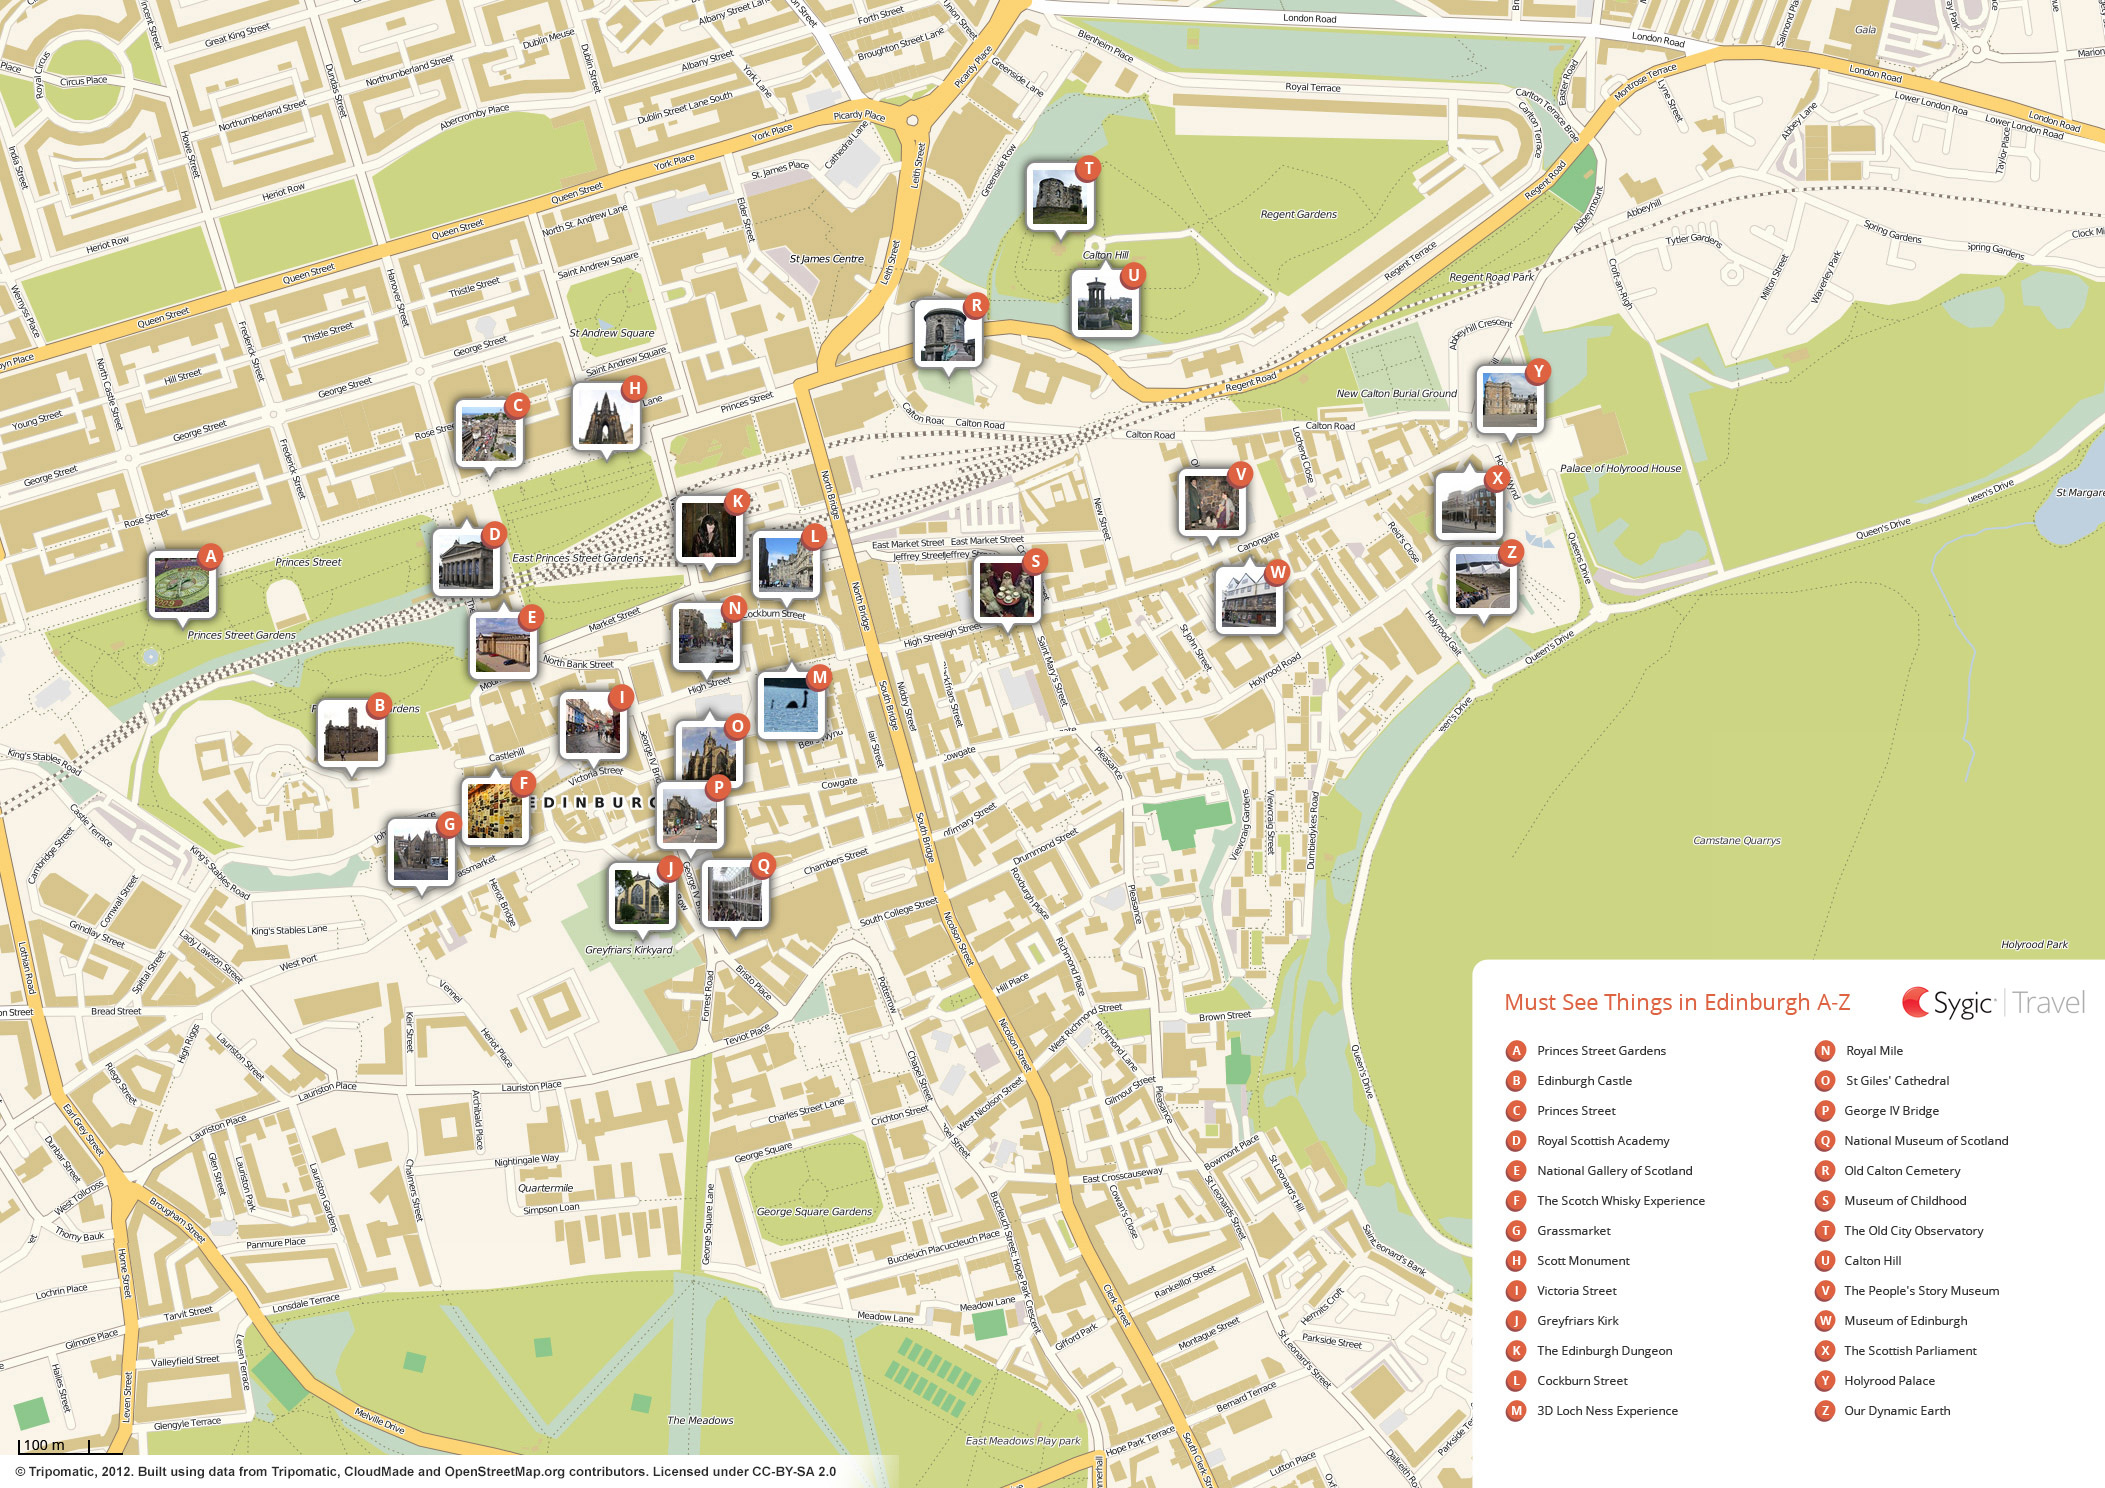 Edinburgh Printable Tourist Map – Scotland Tourist Map